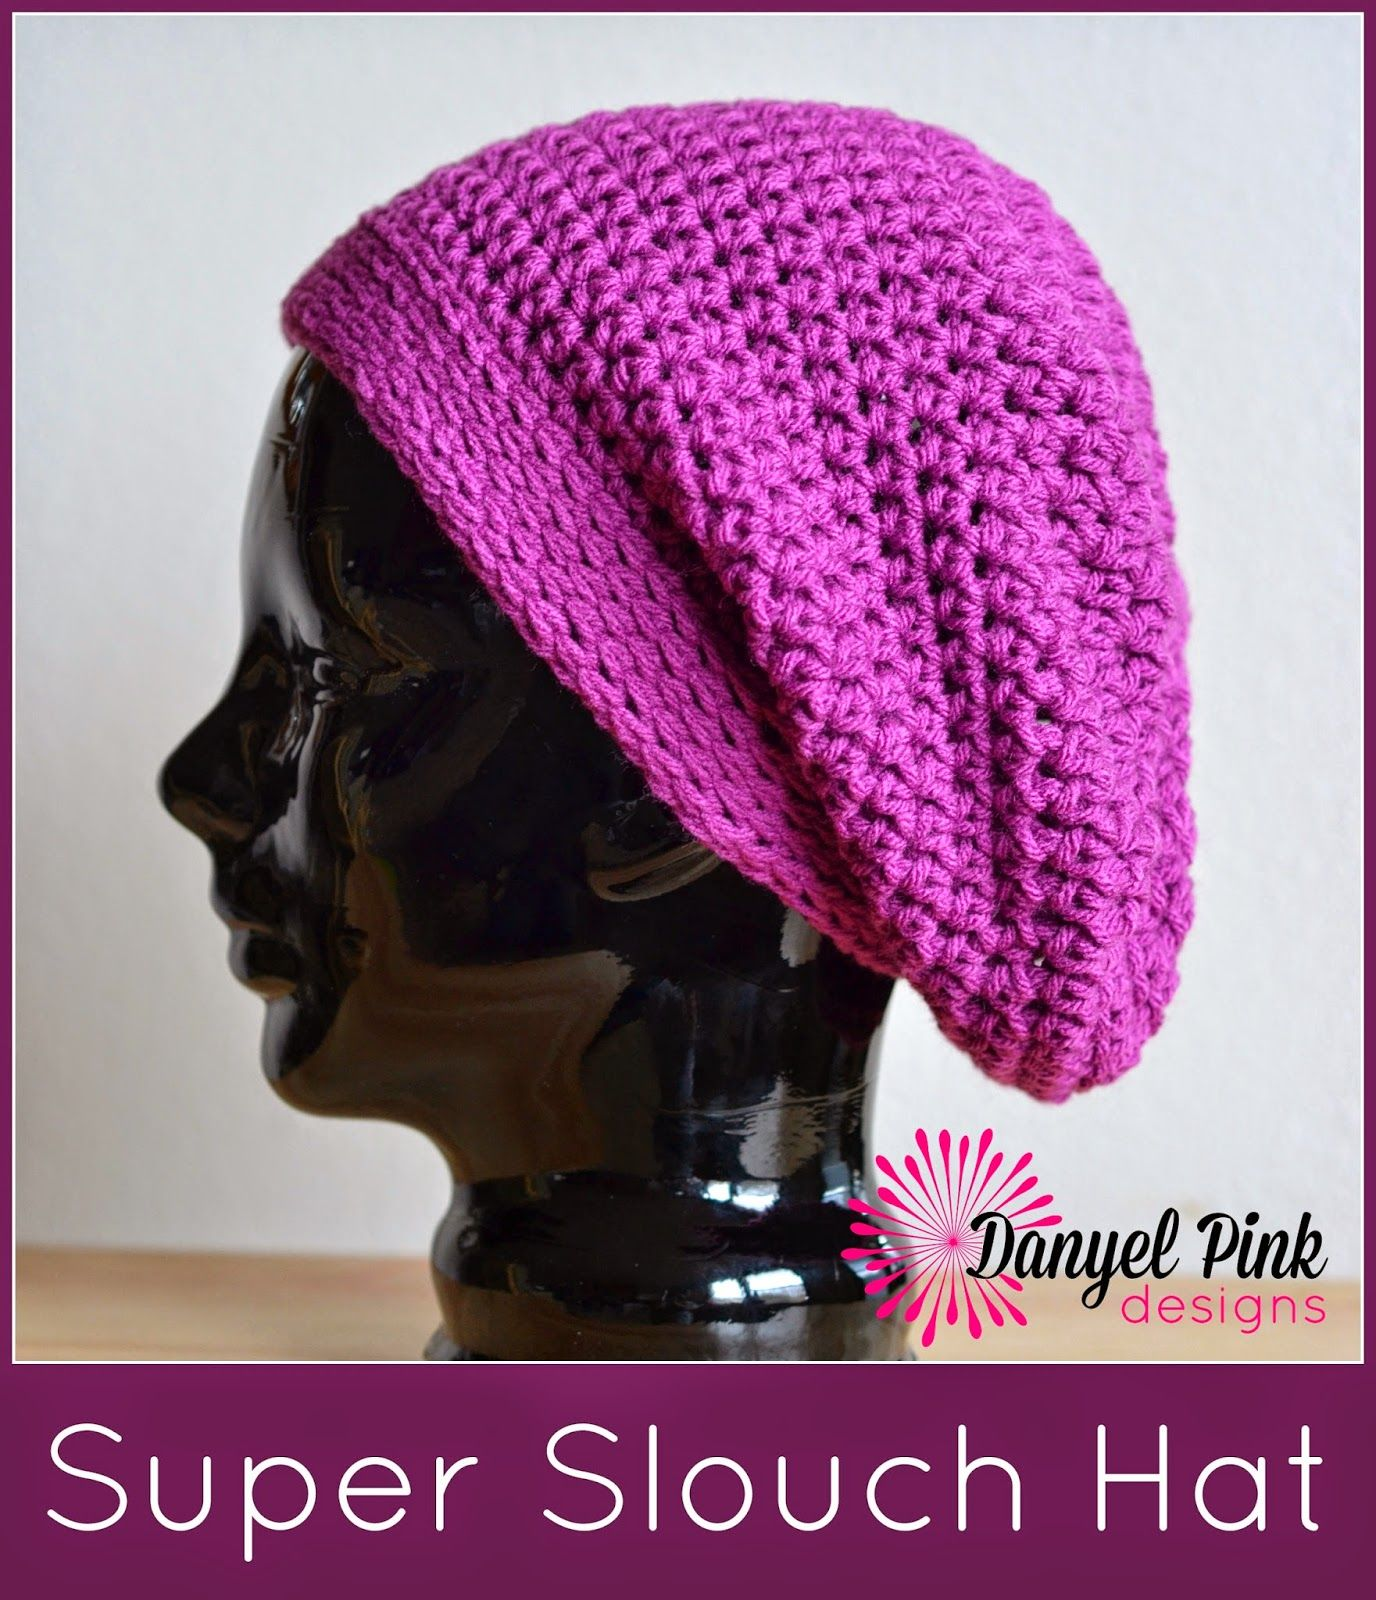 Danyel pink designs free patterns crochet hats pinterest pink